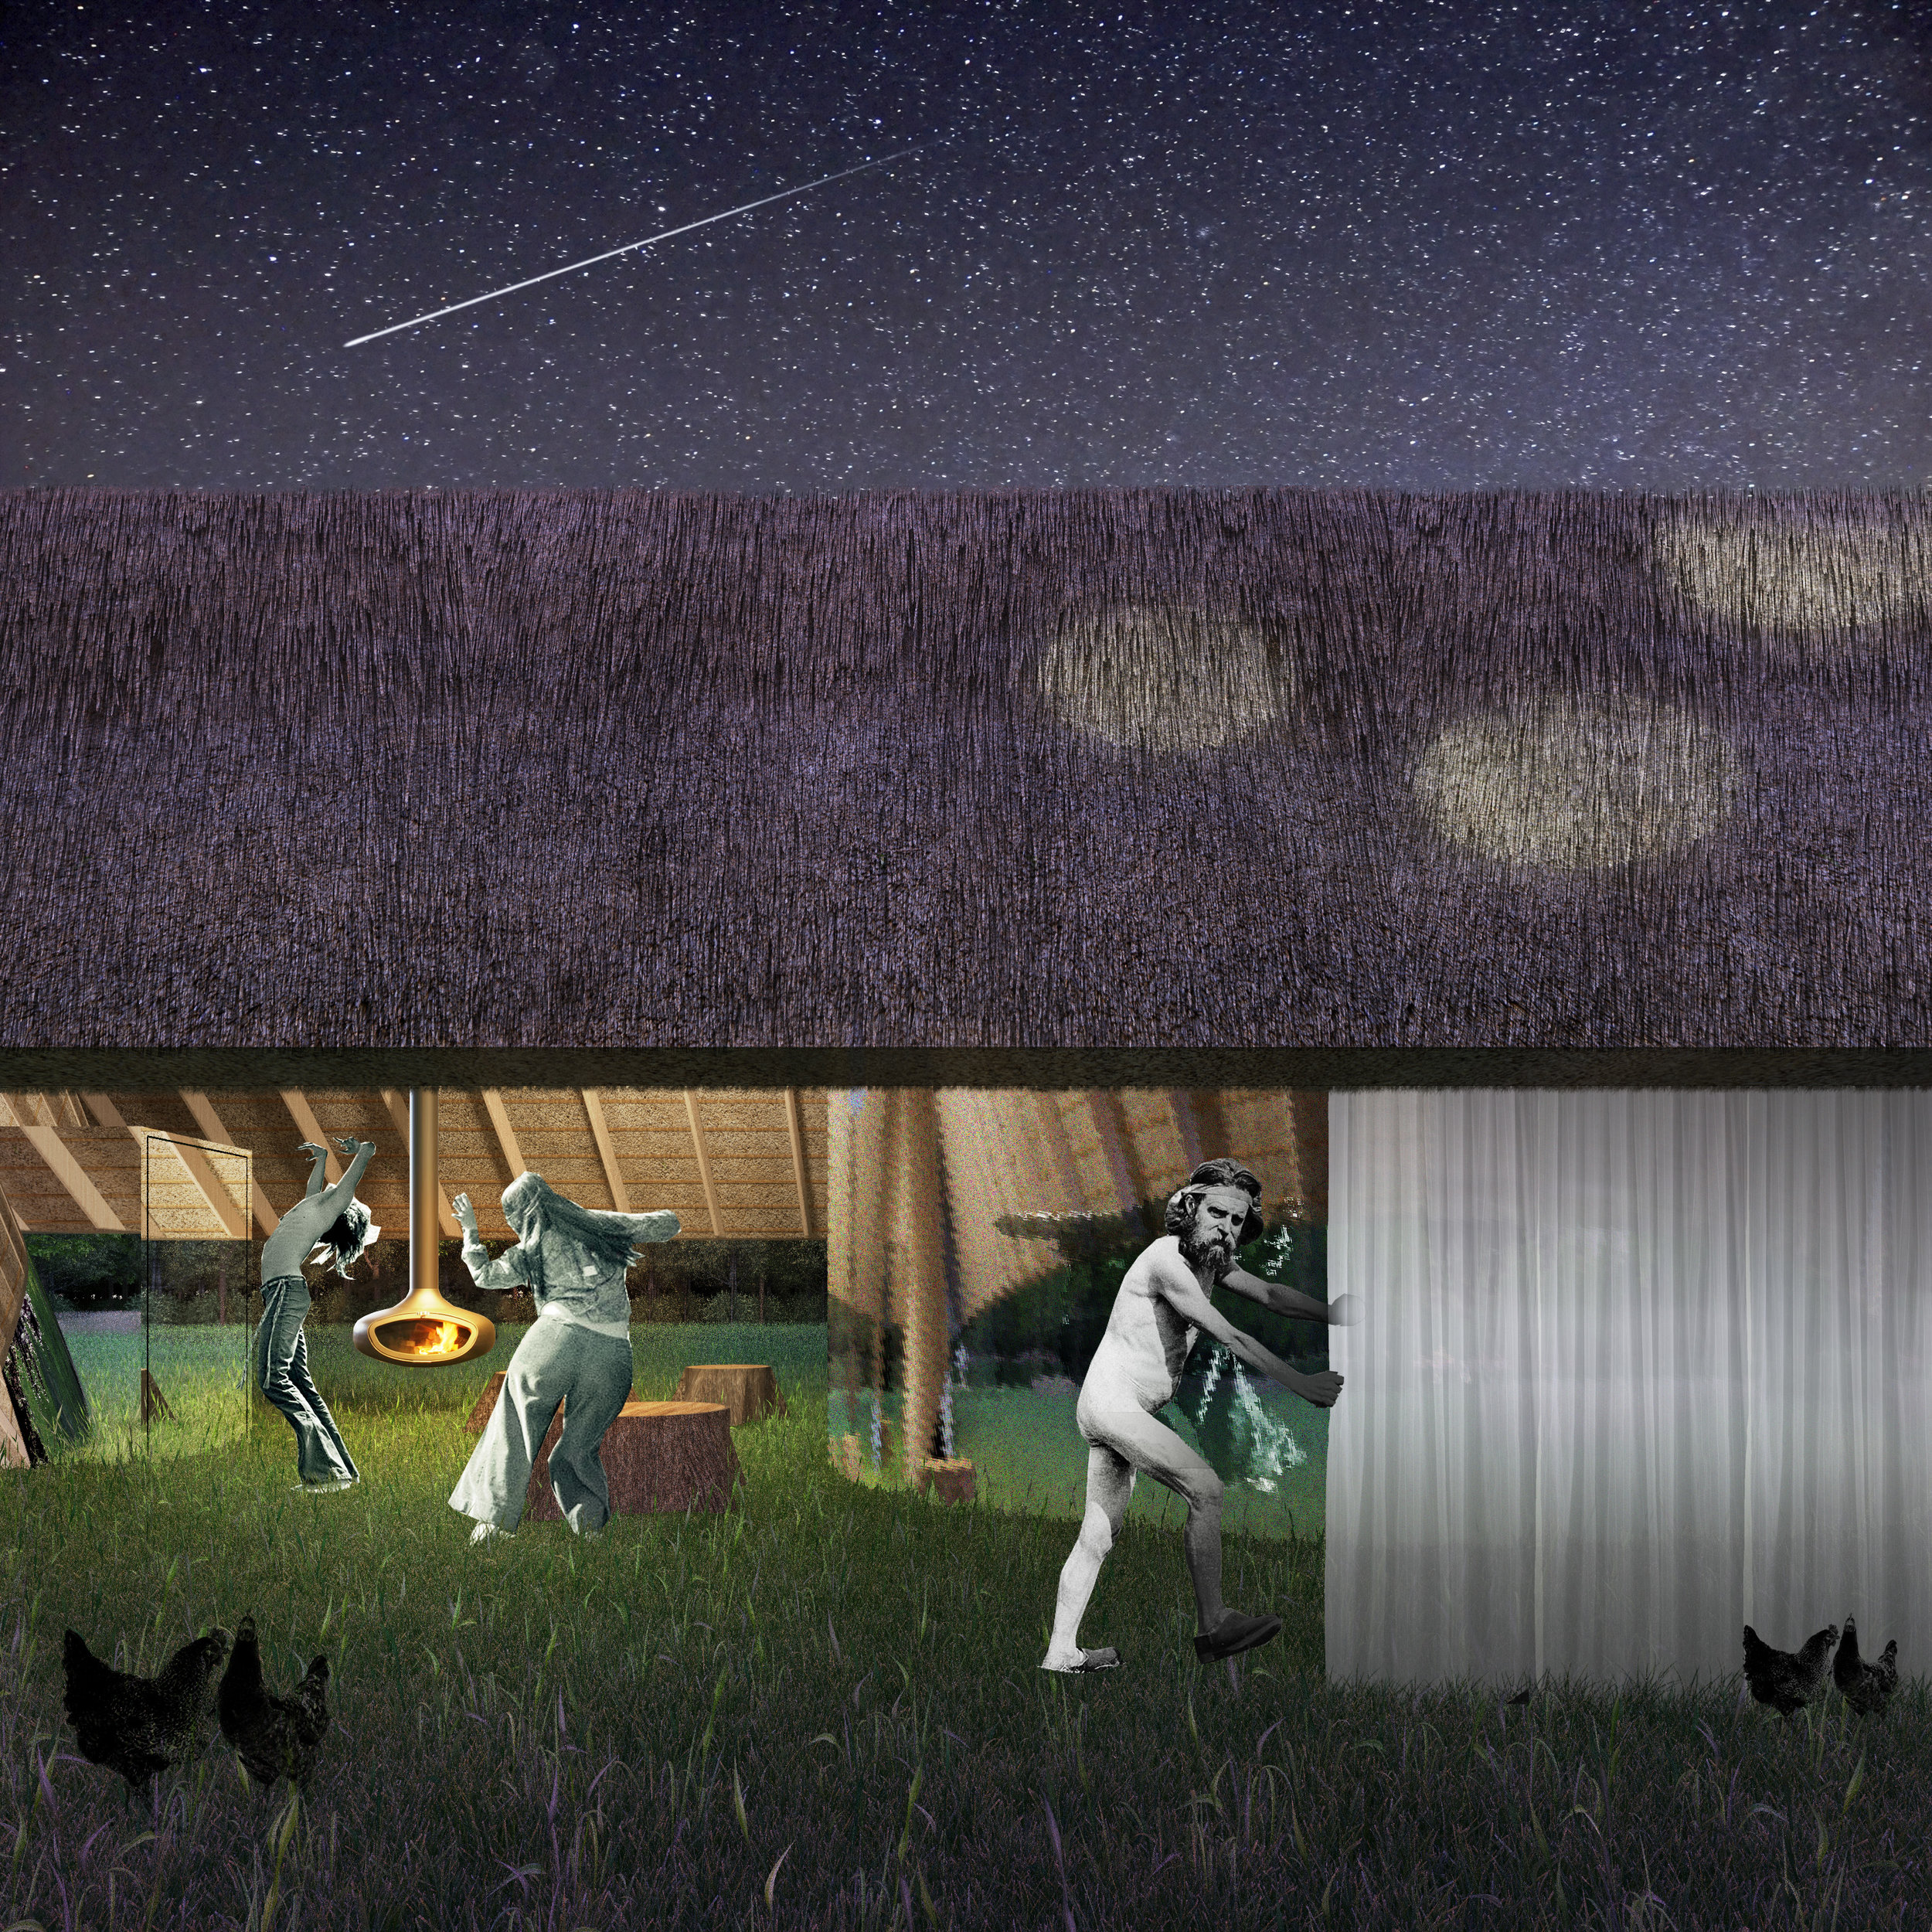 18-View of Dusk Curtain Closing and Perforate Thatch.jpg